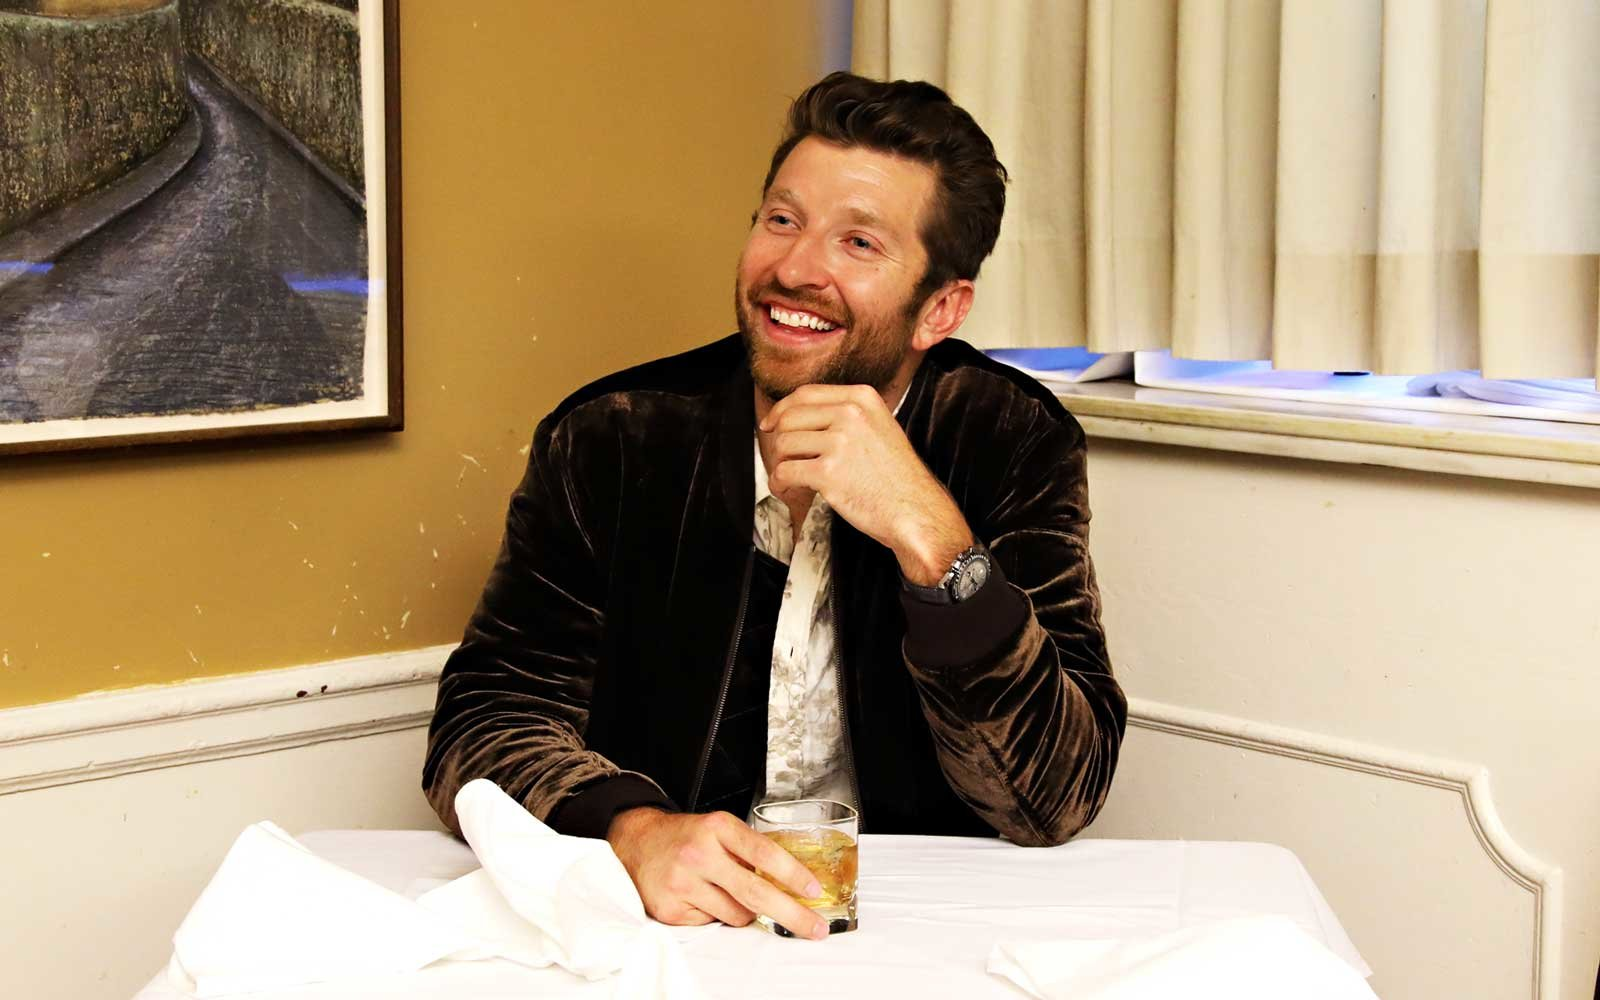 Brett Eldredge At Patsy's Italian Restaurant In New York City